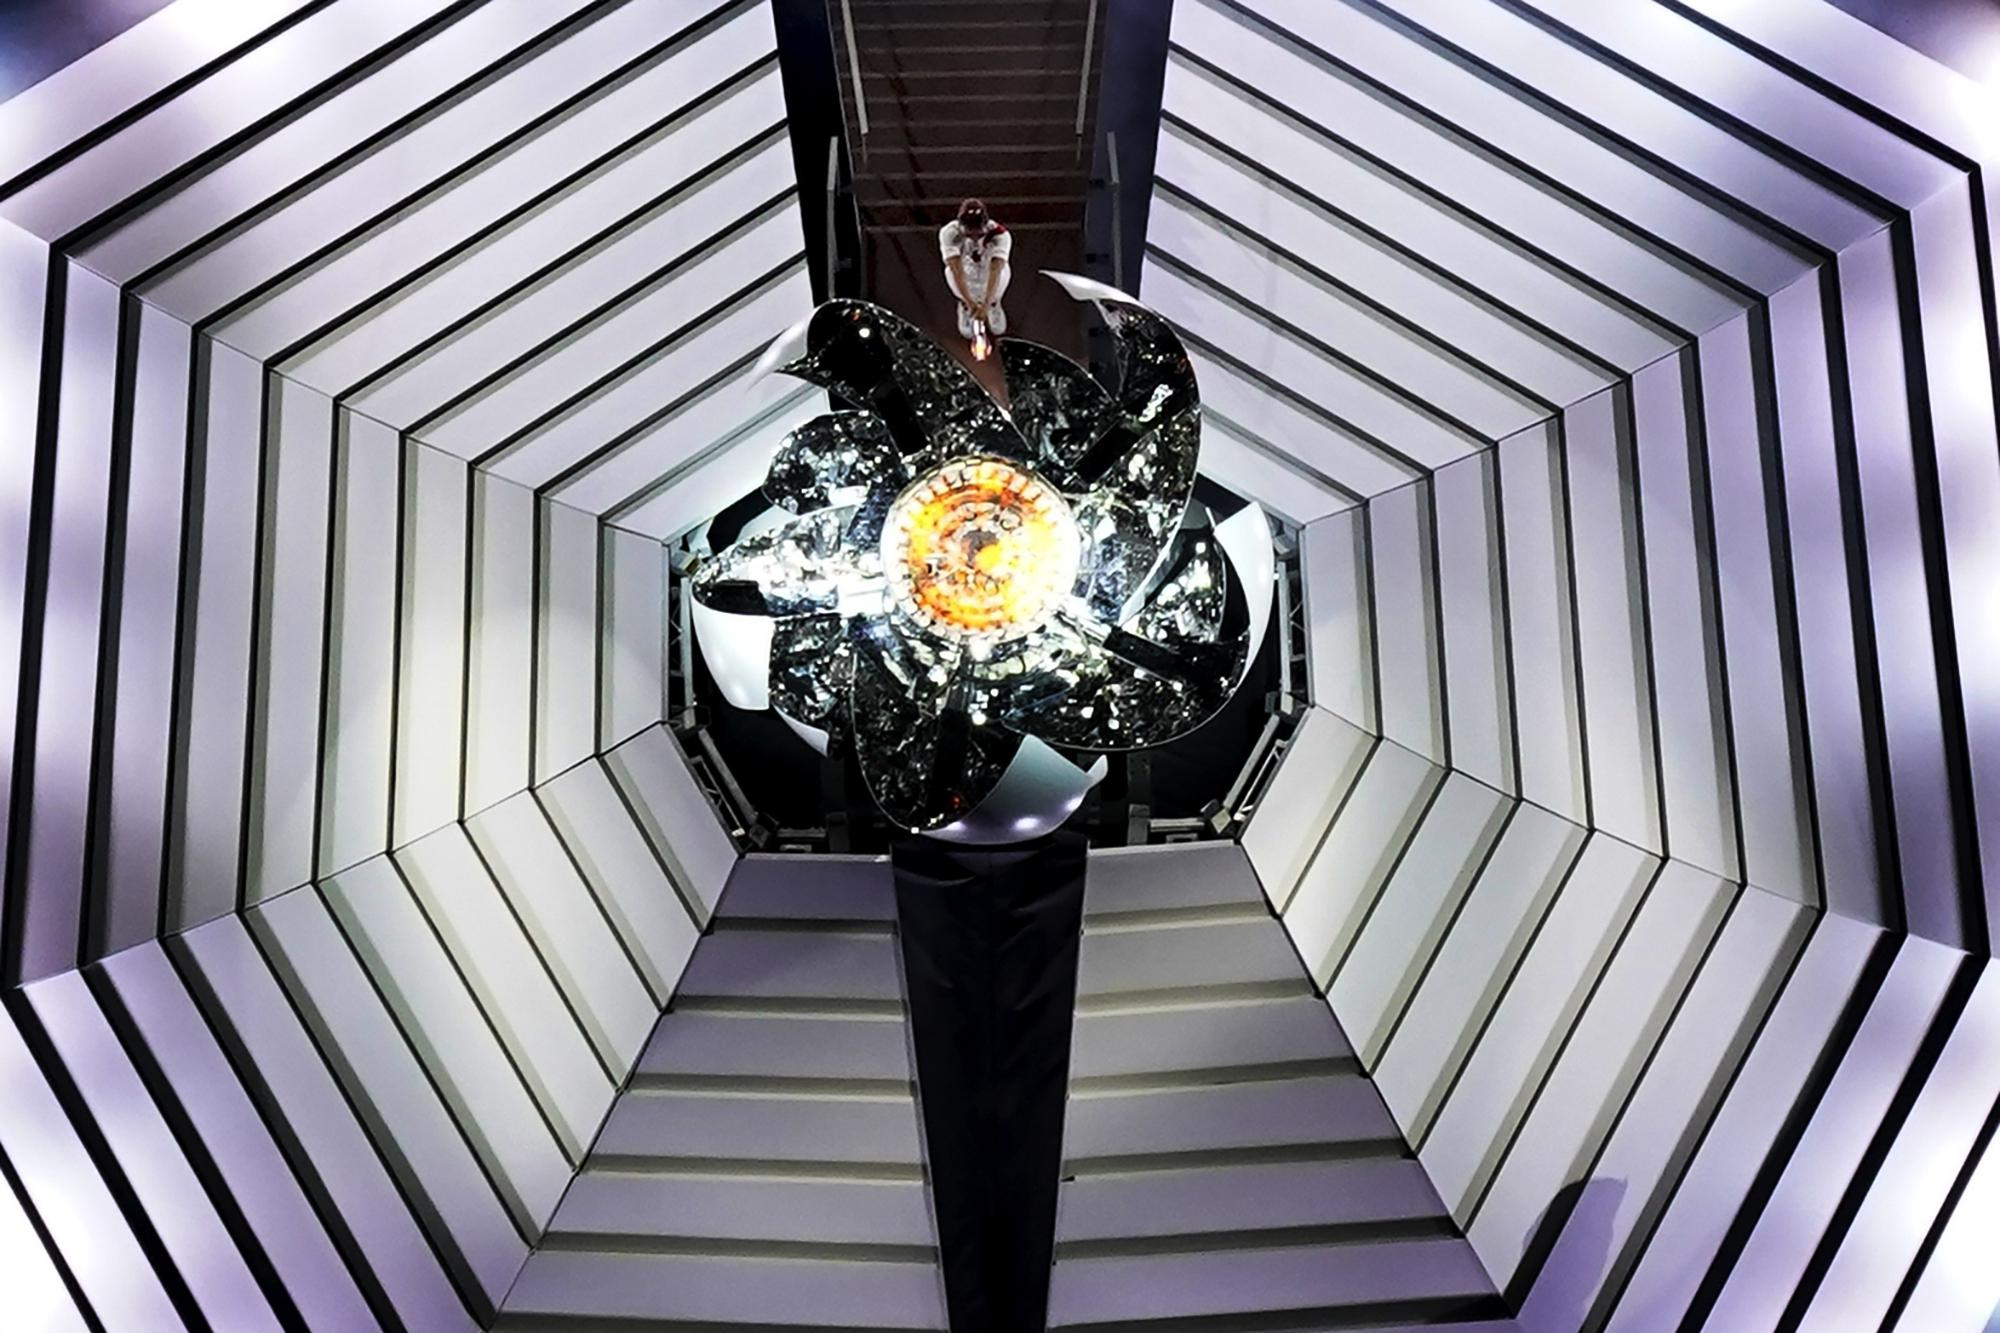 Naomi Osaka lights the Olympic cauldron during the opening ceremony at the Olympic Stadium at the 2020 Summer Olympics, Friday, July 23, 2021, in Tokyo. (AP Photo/Morry Gash)